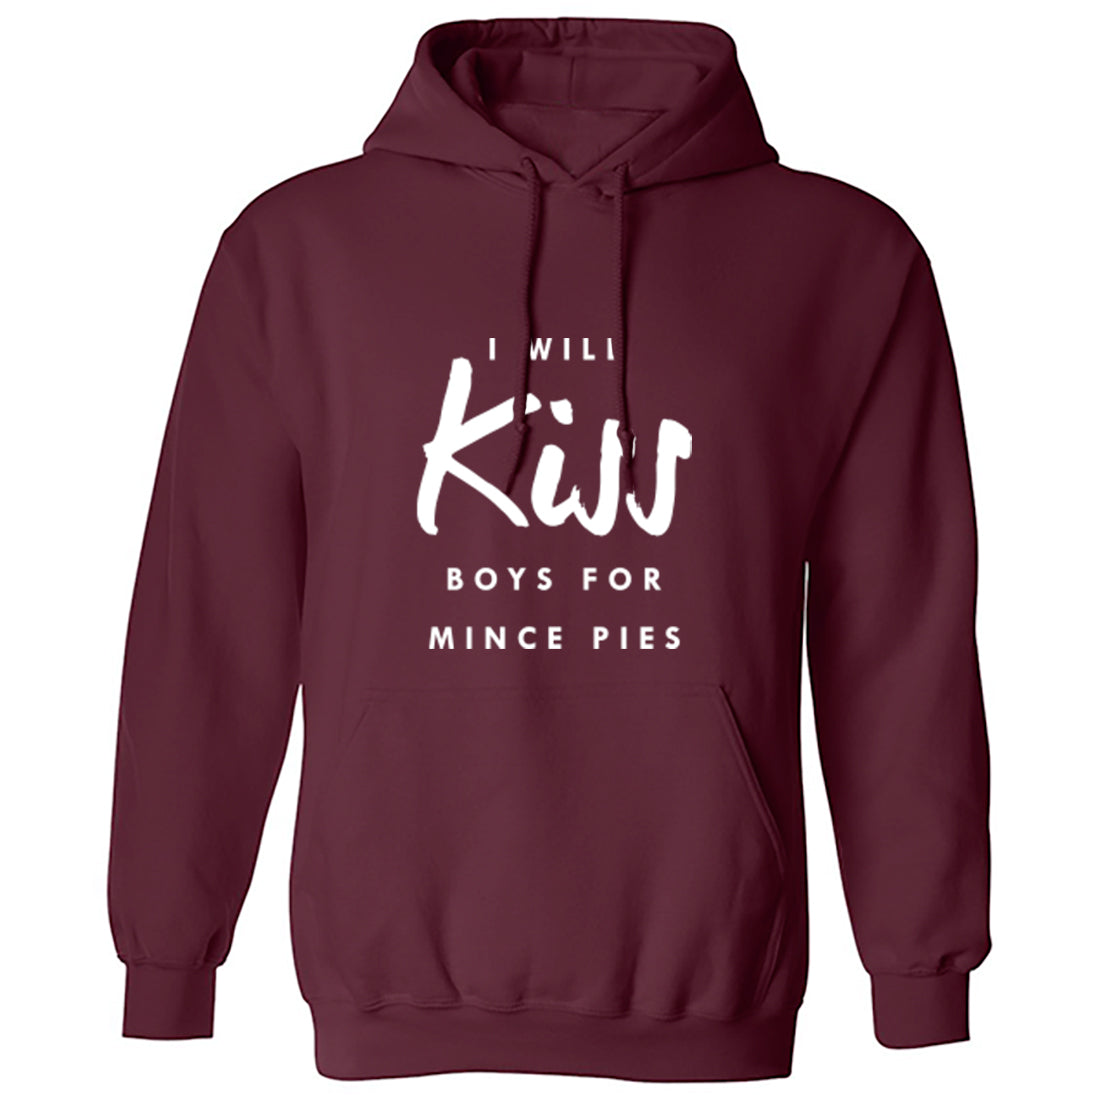 I Will Kiss Boys For Mince Pies Unisex Hoodie K1356 - Illustrated Identity Ltd.